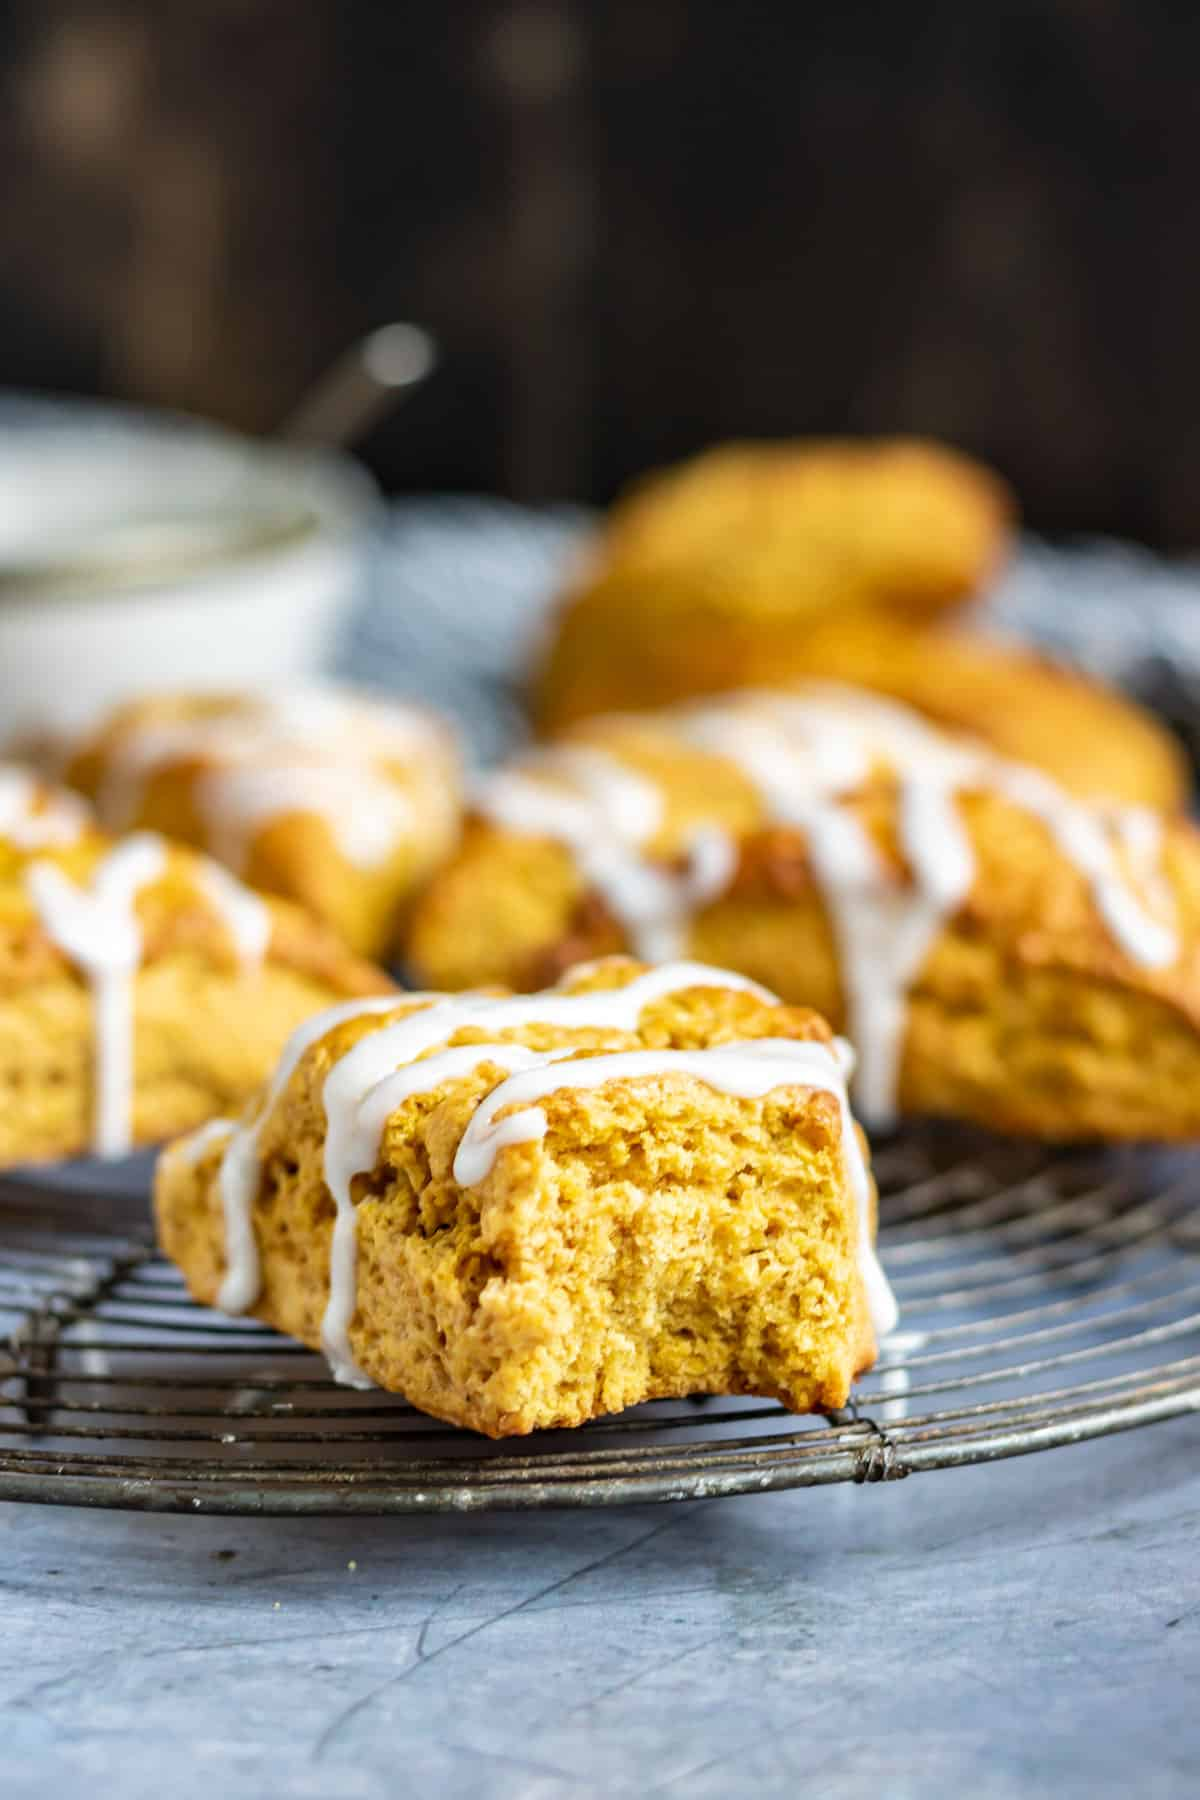 Scone with a bite out.